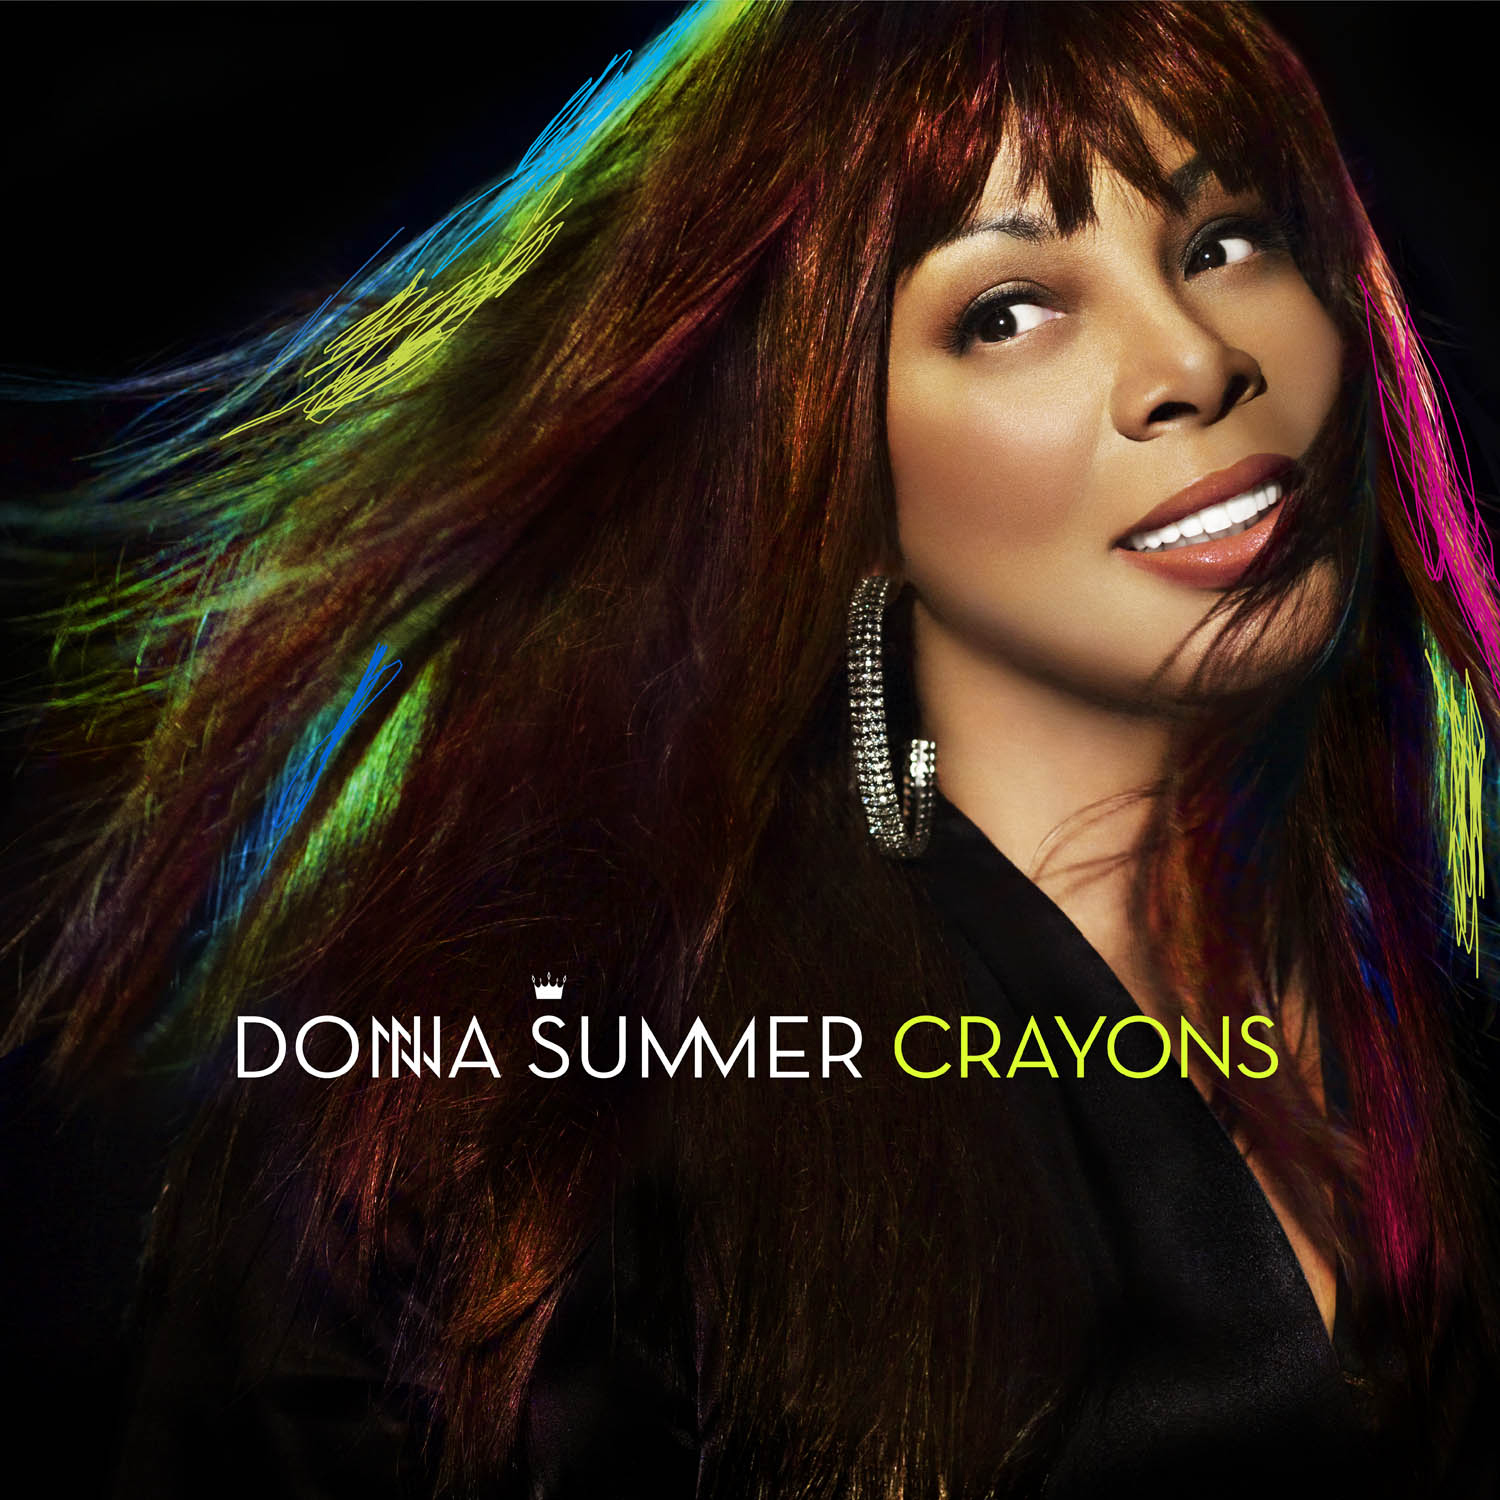 donna summer i feel love скачать